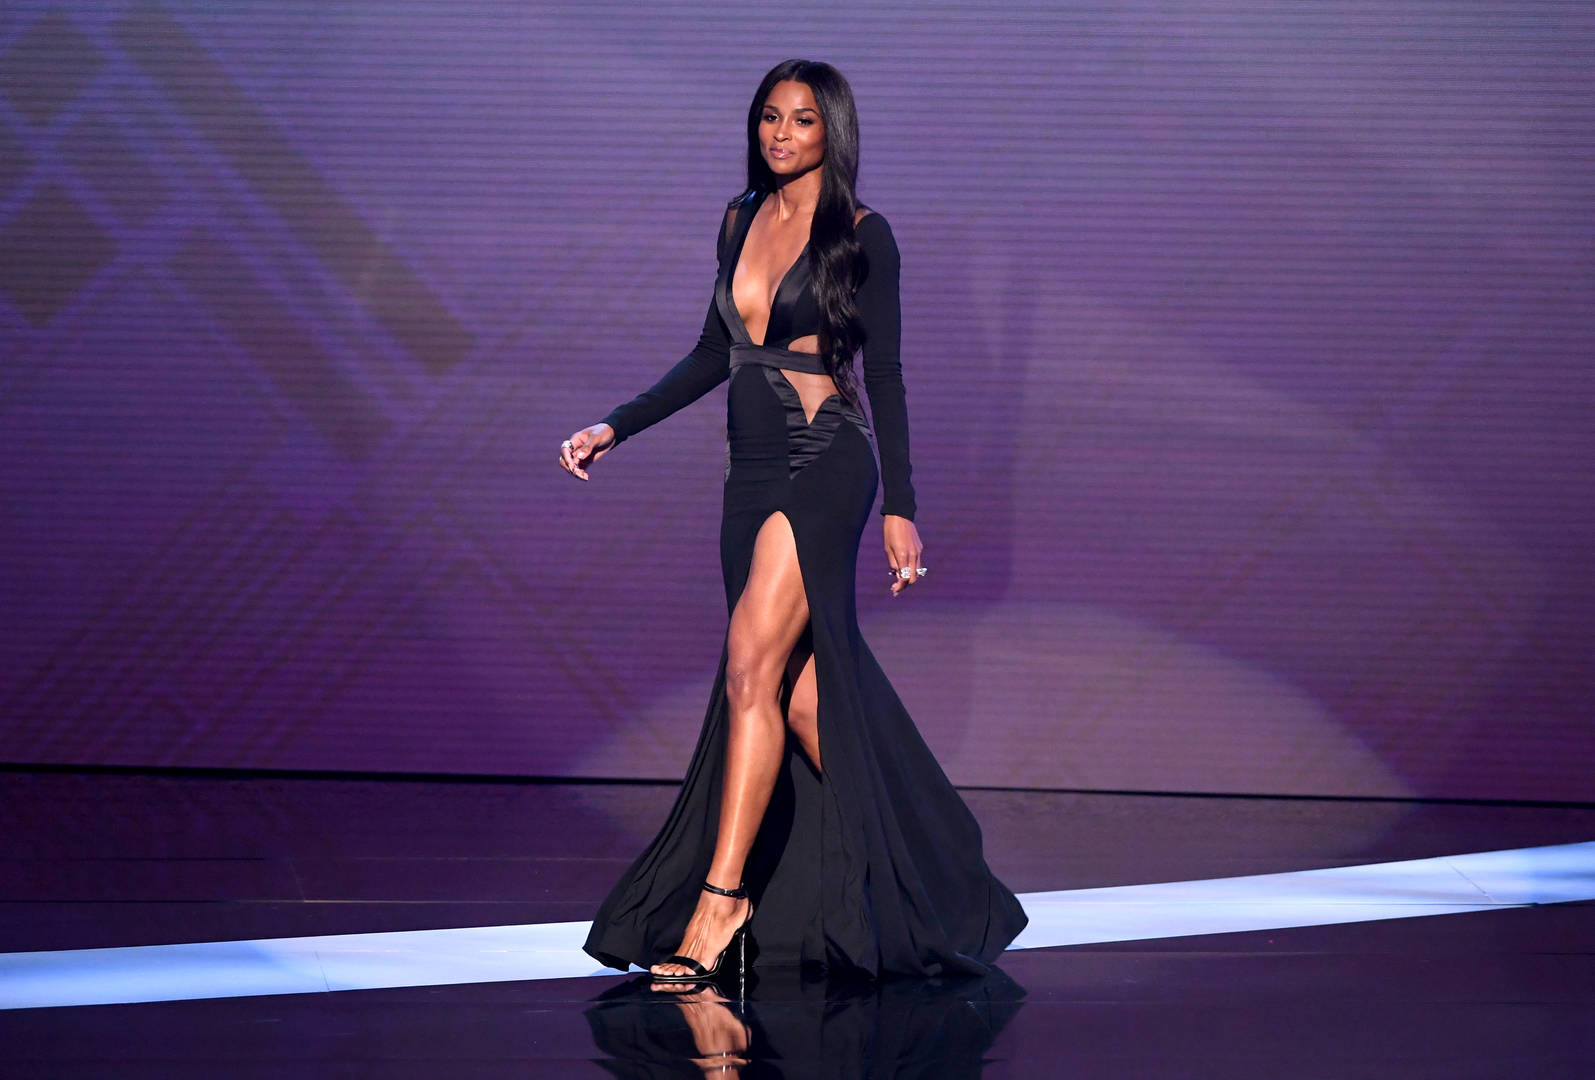 Ciara Says She's Lost 20 Pounds Since The Start Of Her Career